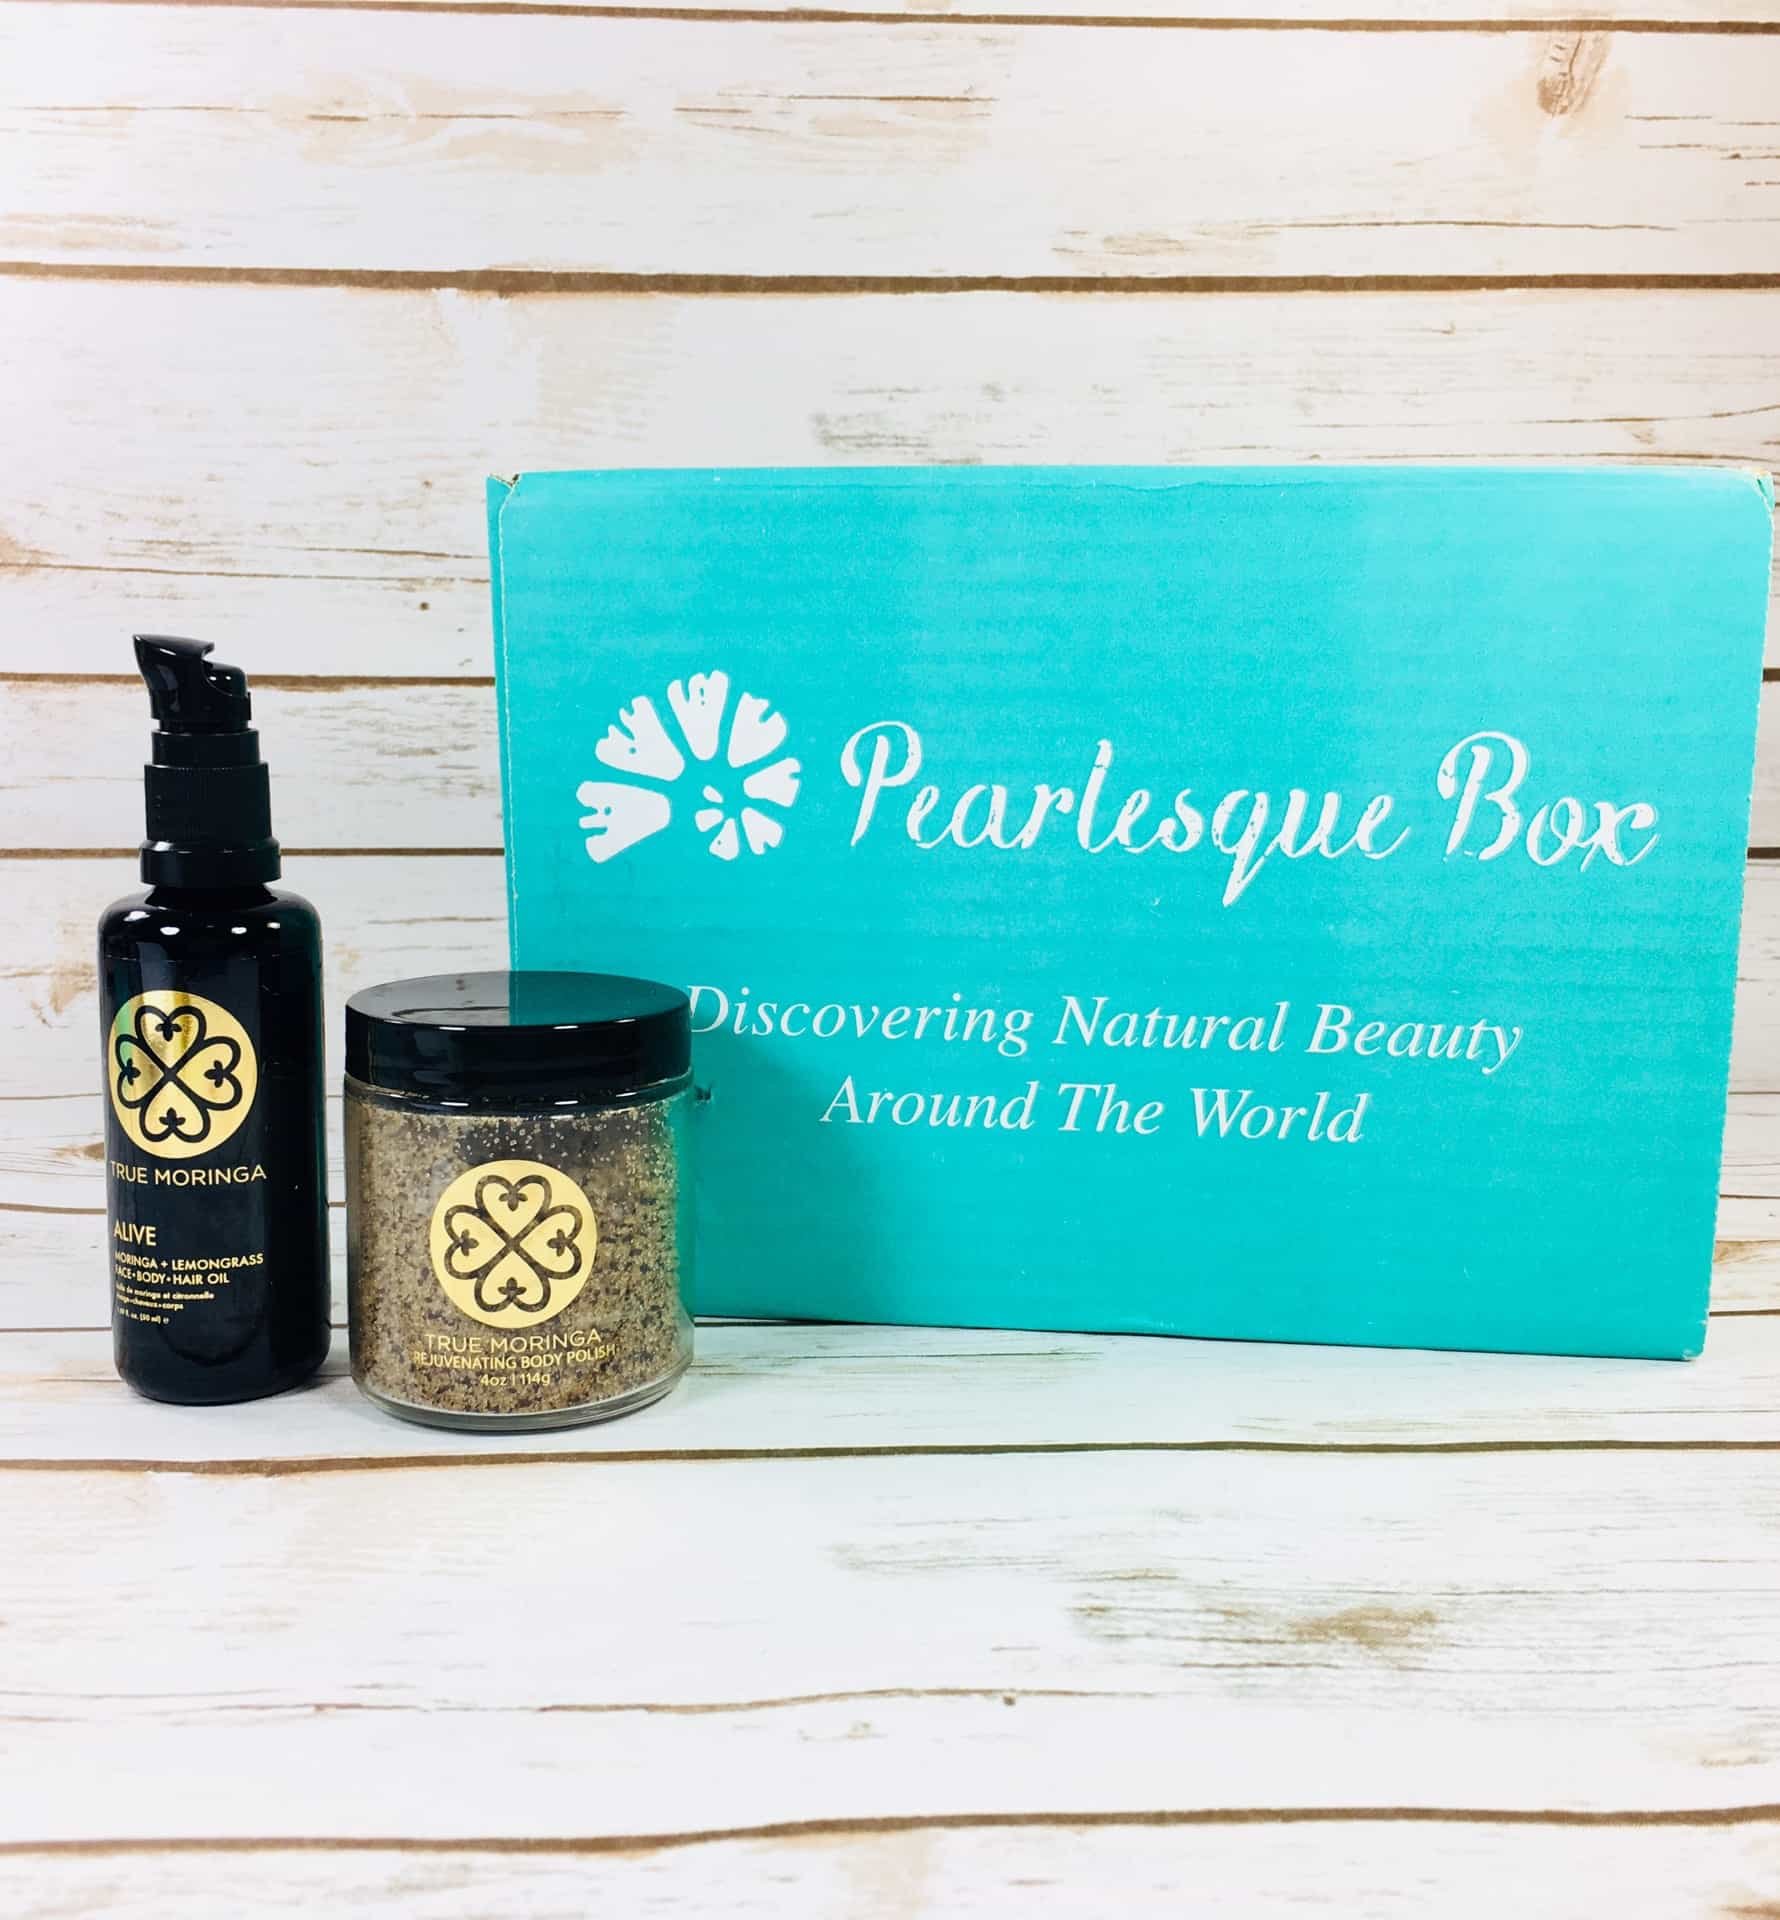 Pearlesque Box October 2017 Subscription Box Review + Coupon